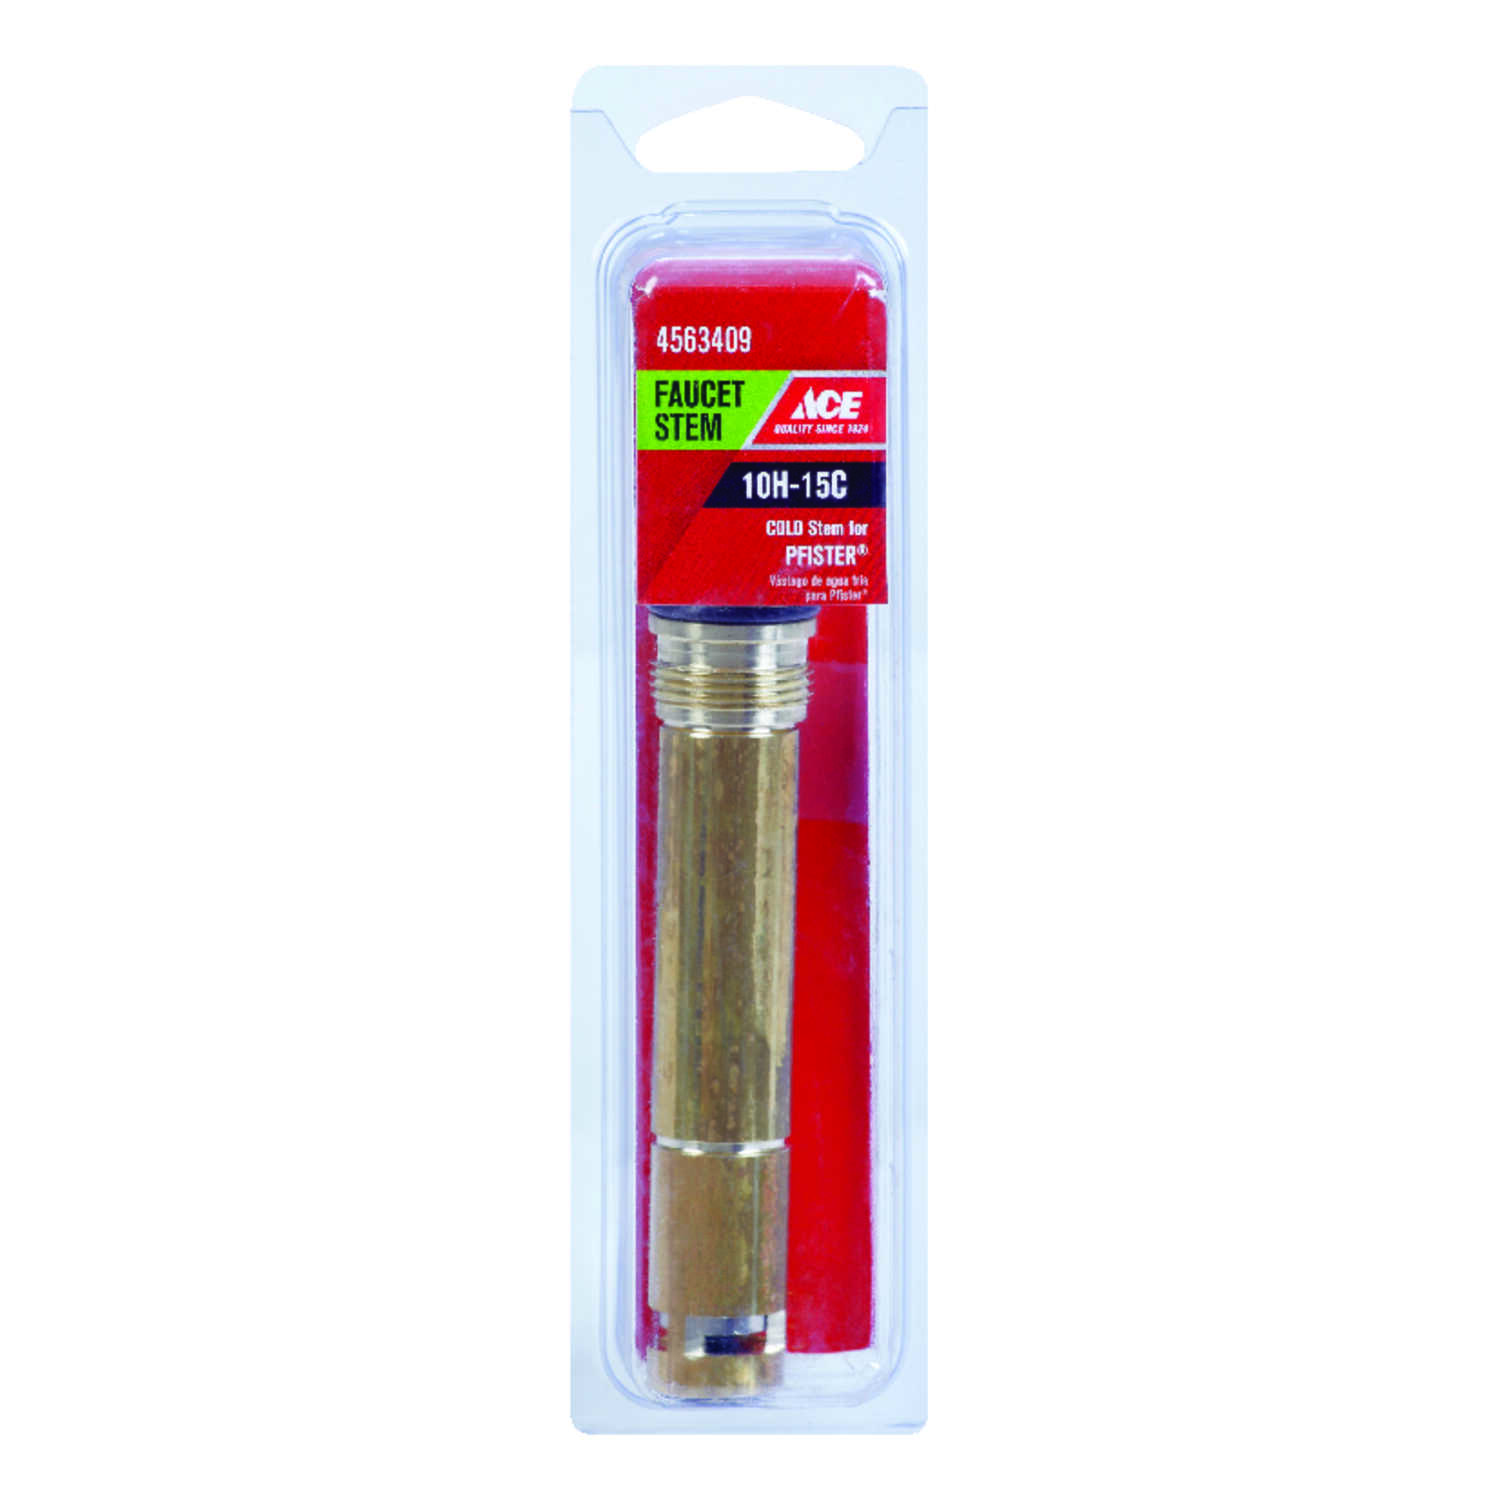 Ace  Cold  10H-15C  Faucet Stem  For Price Pfister